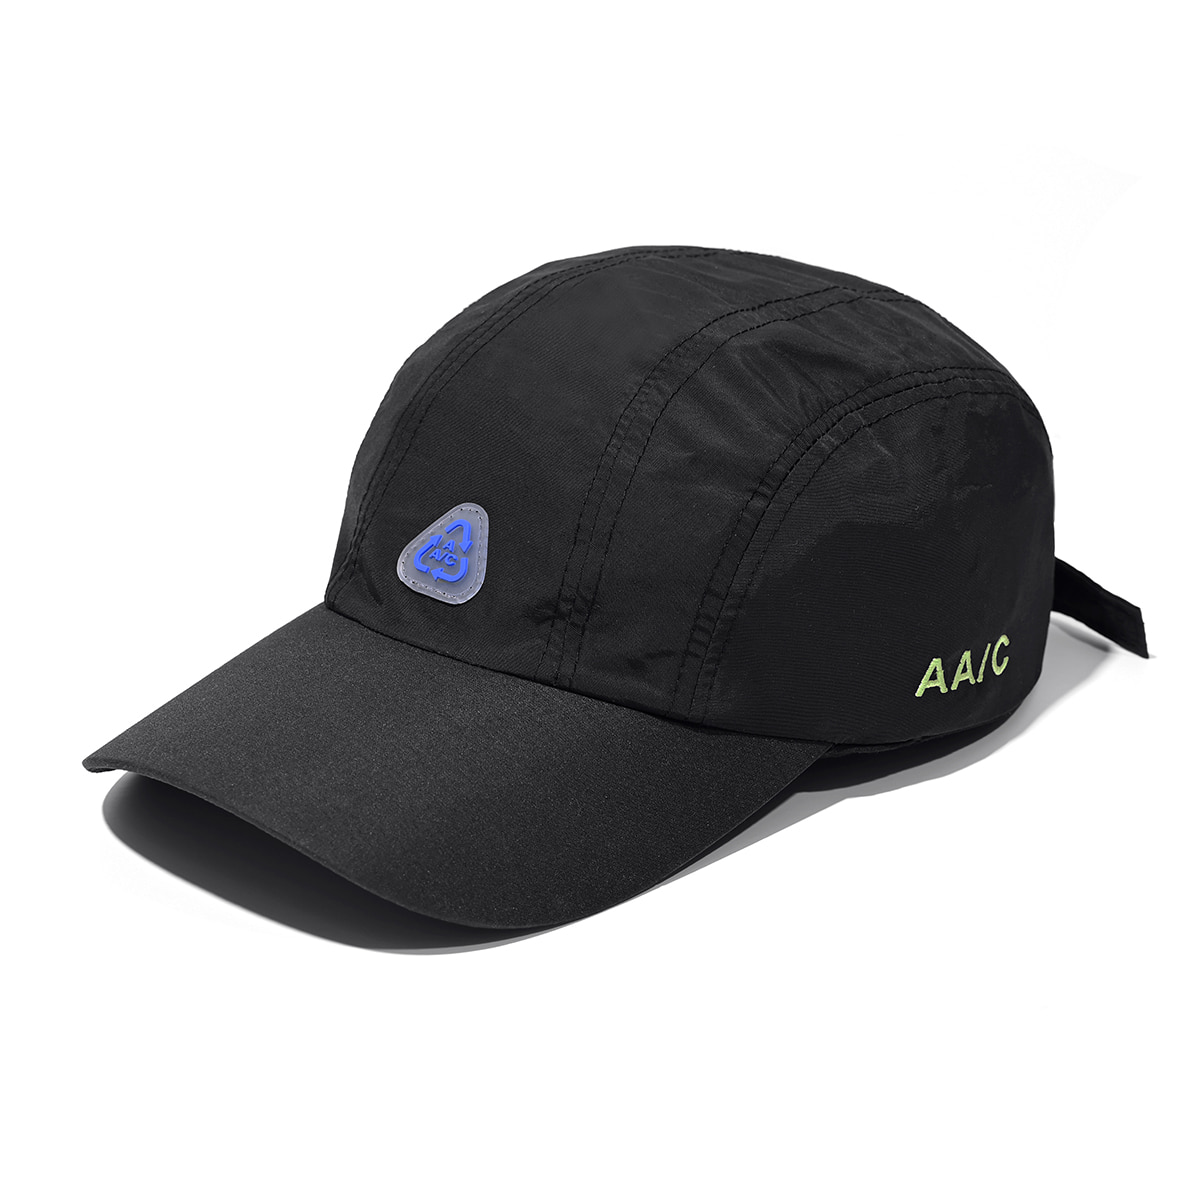 AA/C Nylon 5-Panel Cap (black)